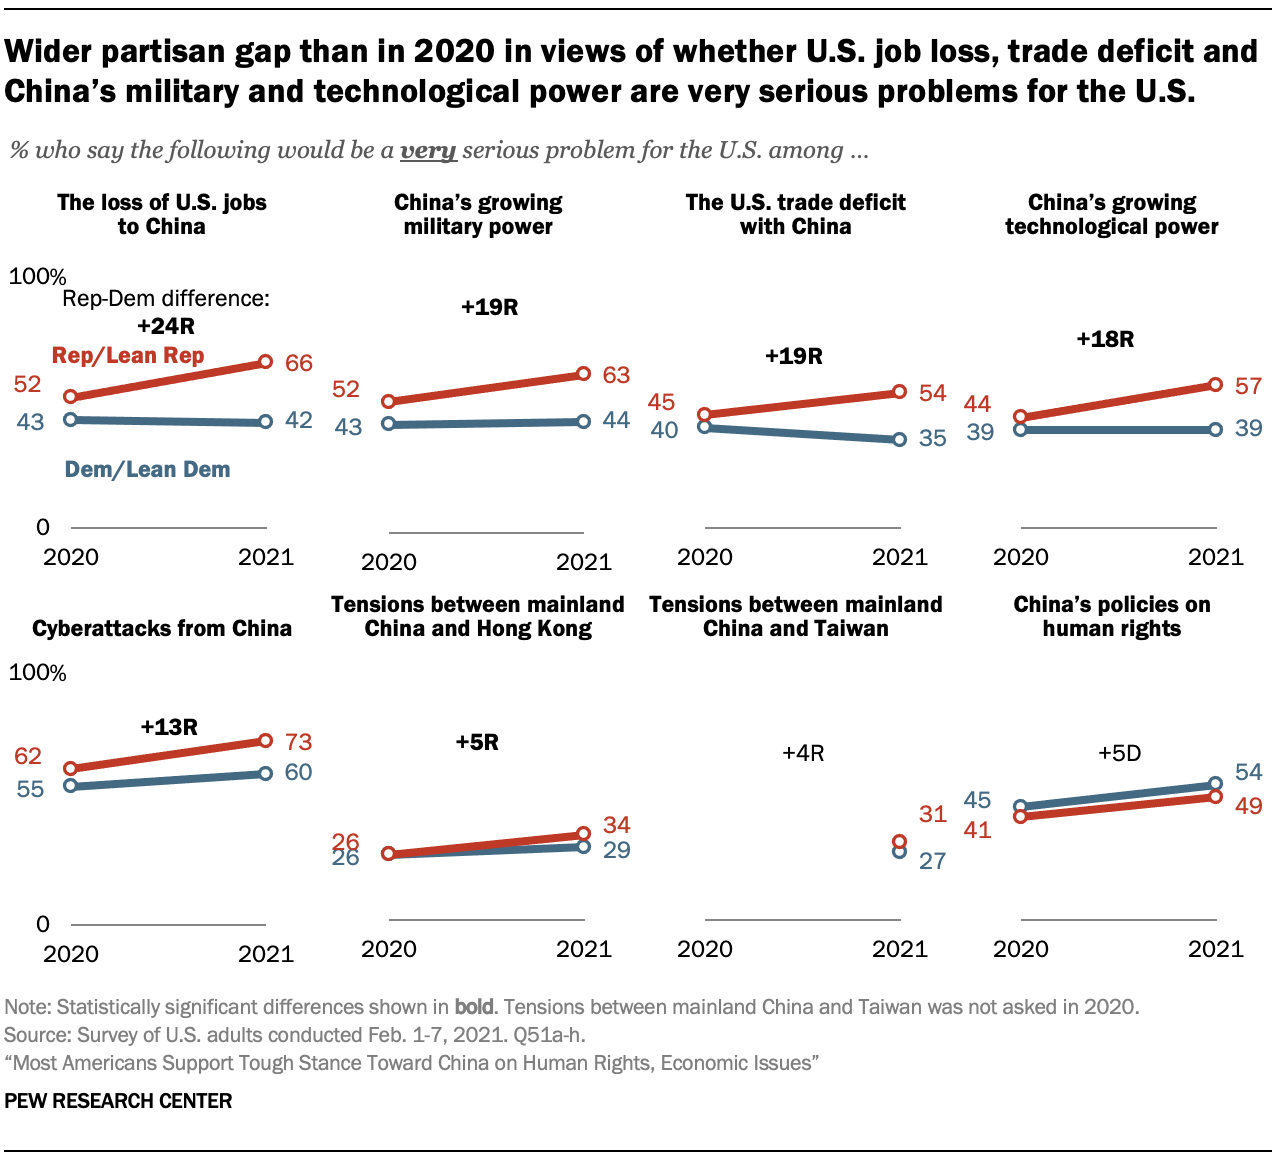 Wider partisan gap than in 2020 in views of whether U.S. job loss, trade deficit and China's military and technological power are very serious problems for the U.S.